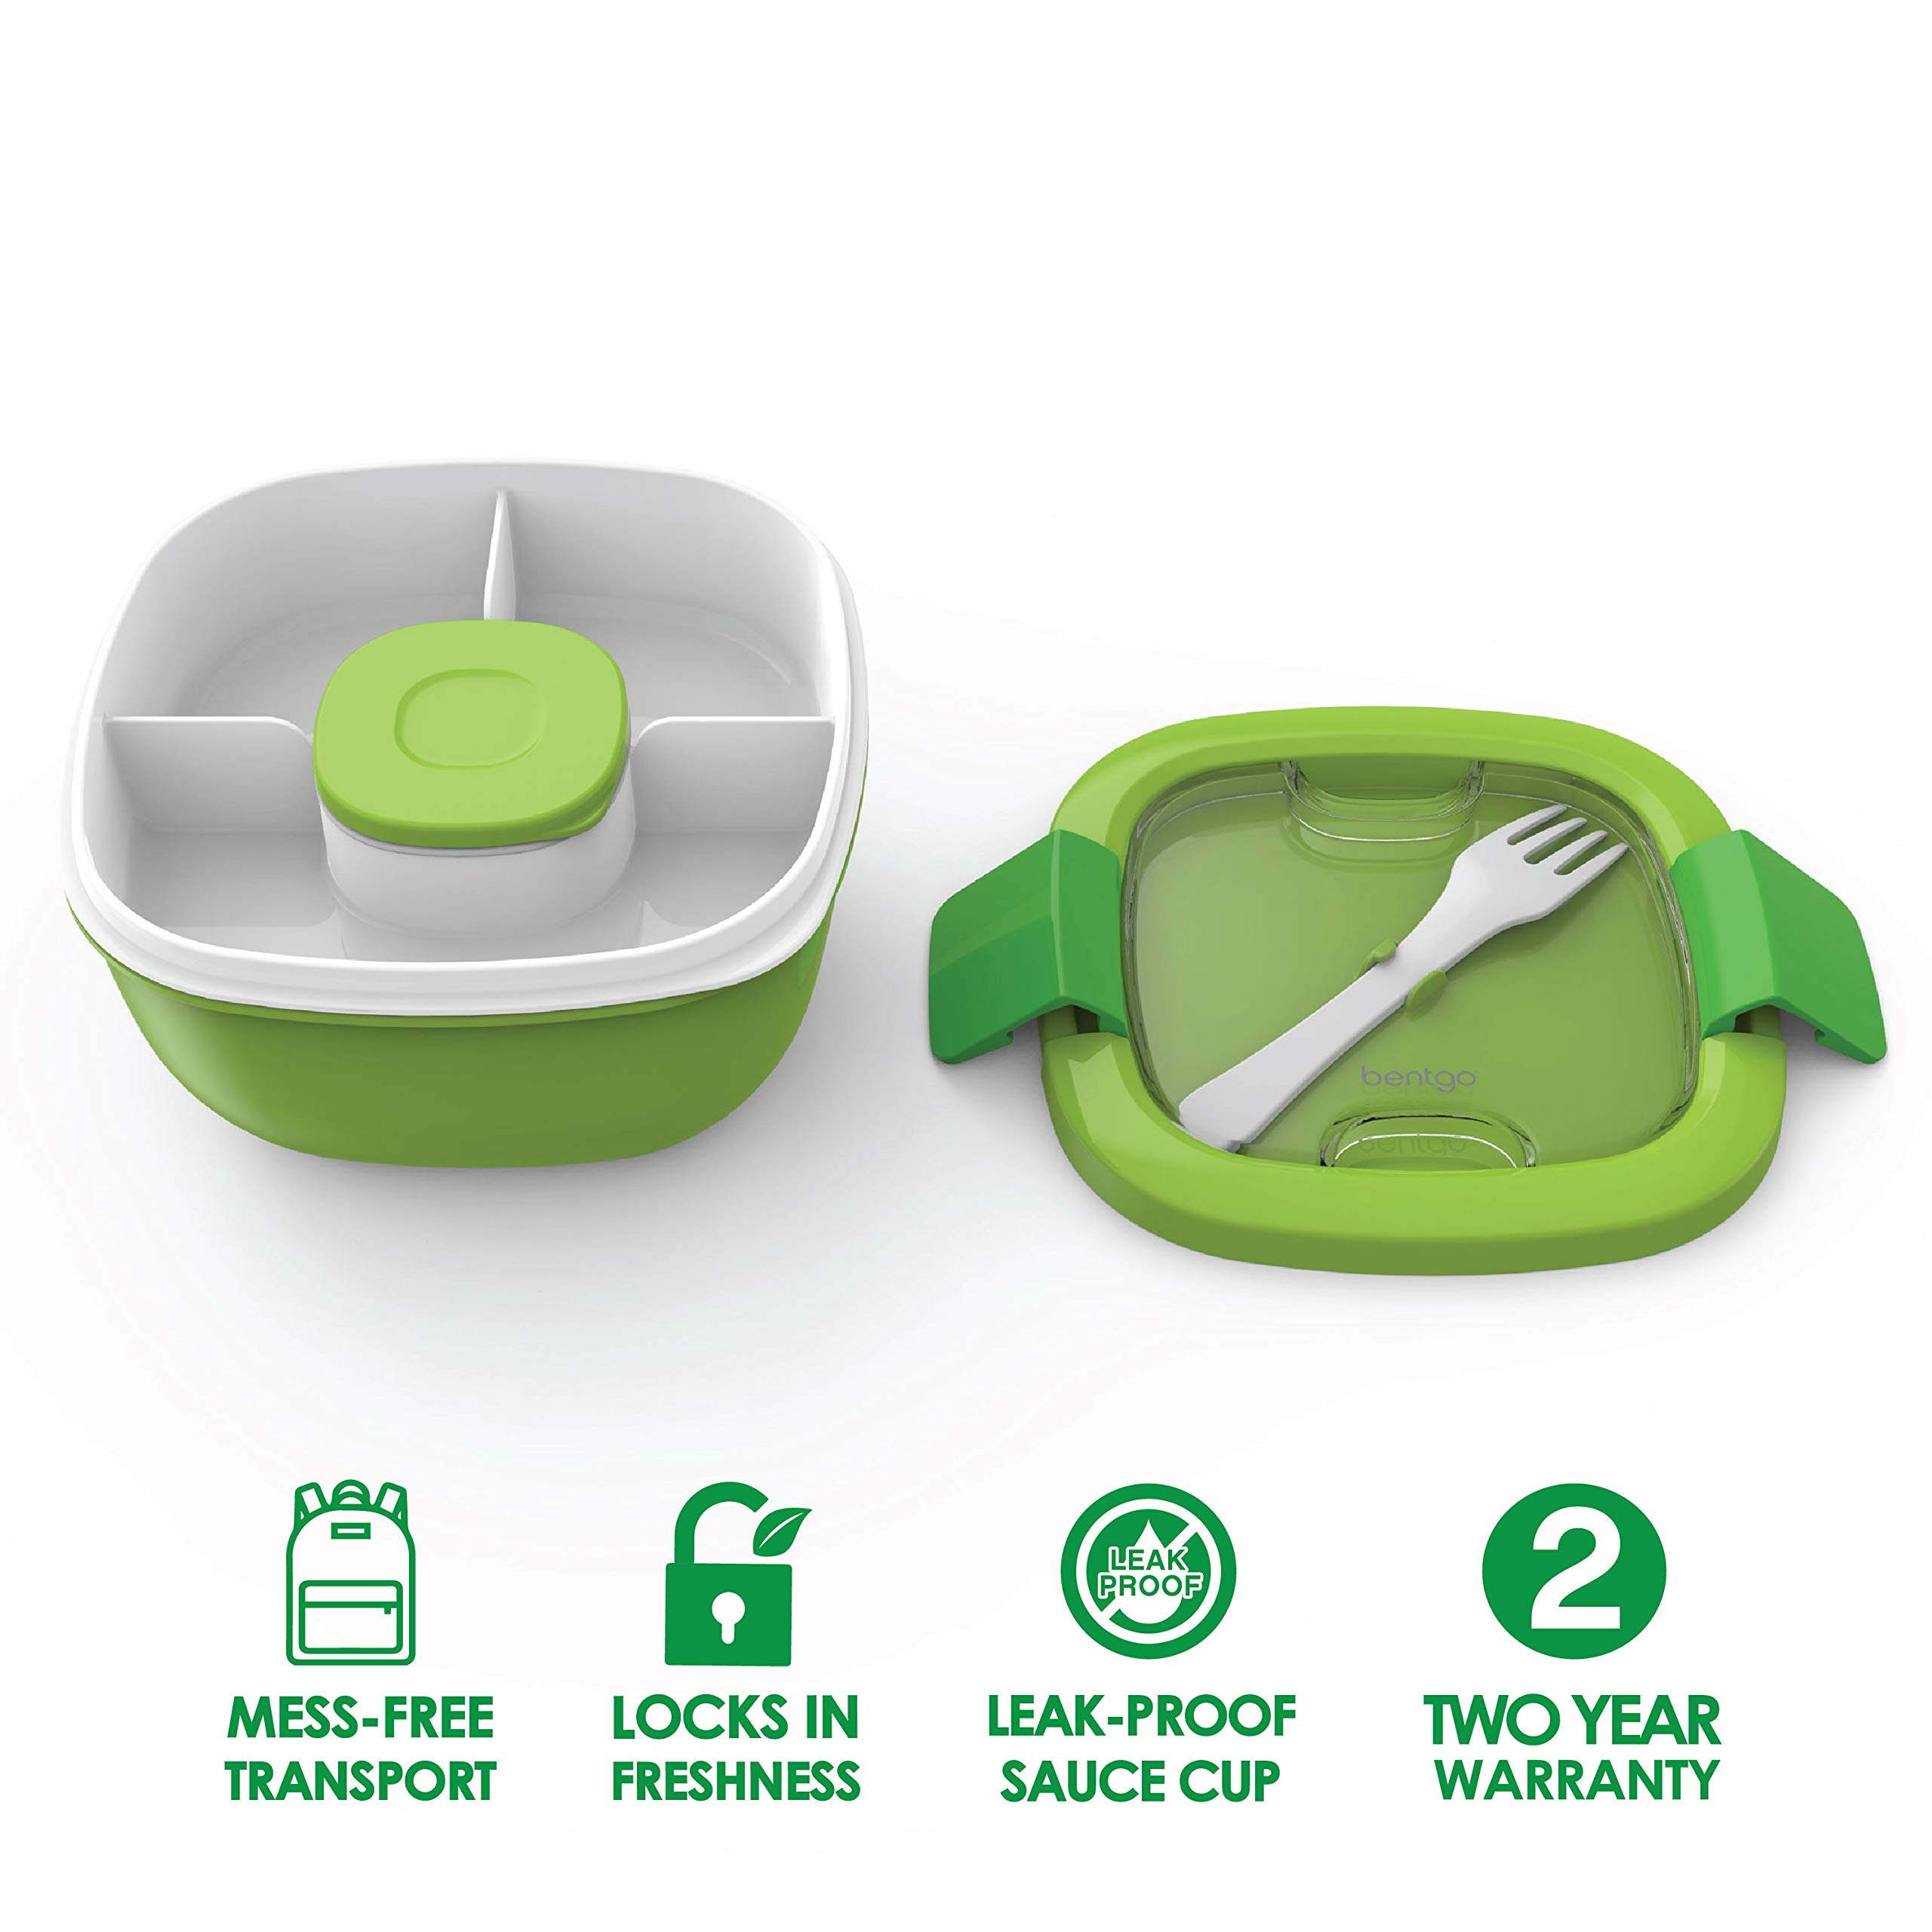 Bentgo Salad (Green) BPA-Free Lunch Container with Large 54-oz Salad Bowl, 3-Compartment Bento-Style Tray for Salad Toppings and Snacks, 3-oz Sauce Container for Dressings, and Built-In Reusable Fork by Bentgo (Image #2)